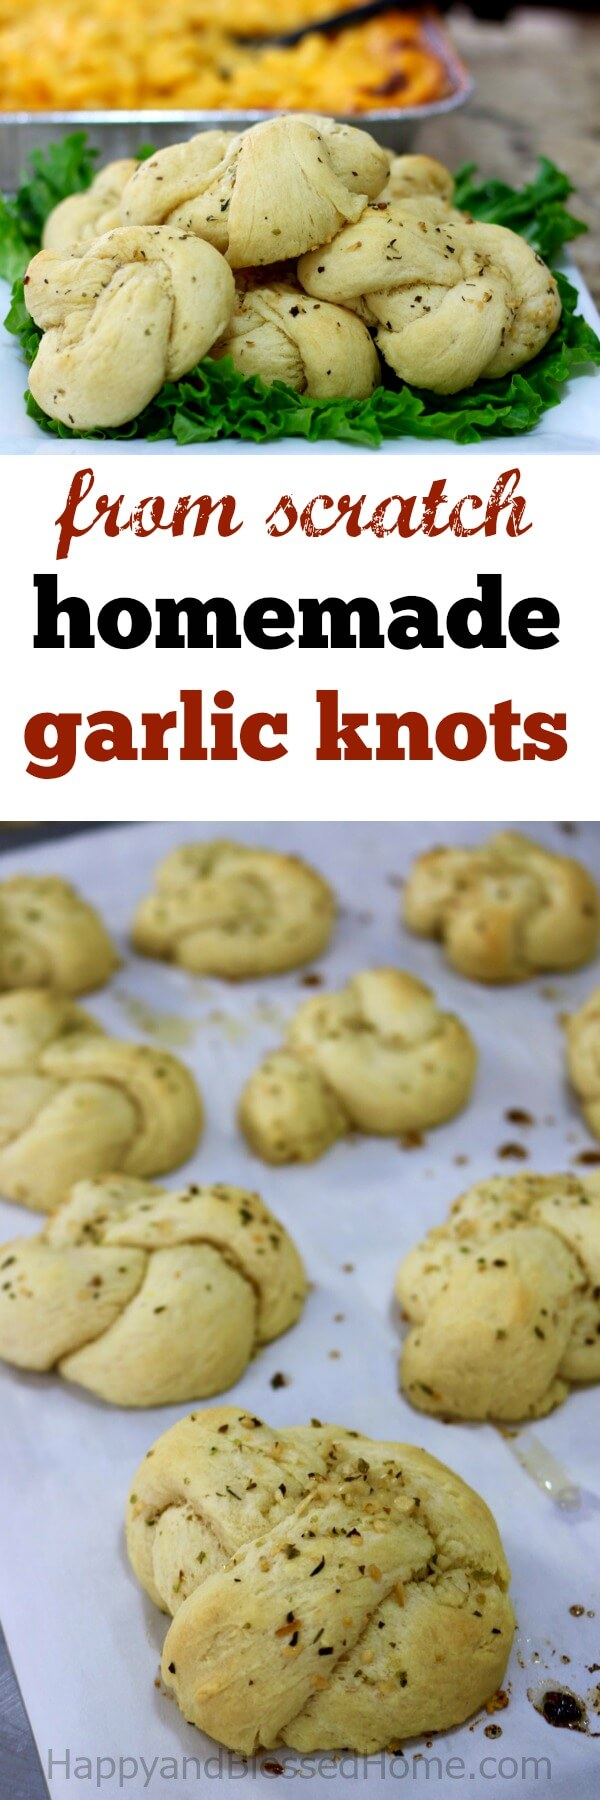 Easy to make homemade garlic knots from scratch - excellent flavor and flaky dough!